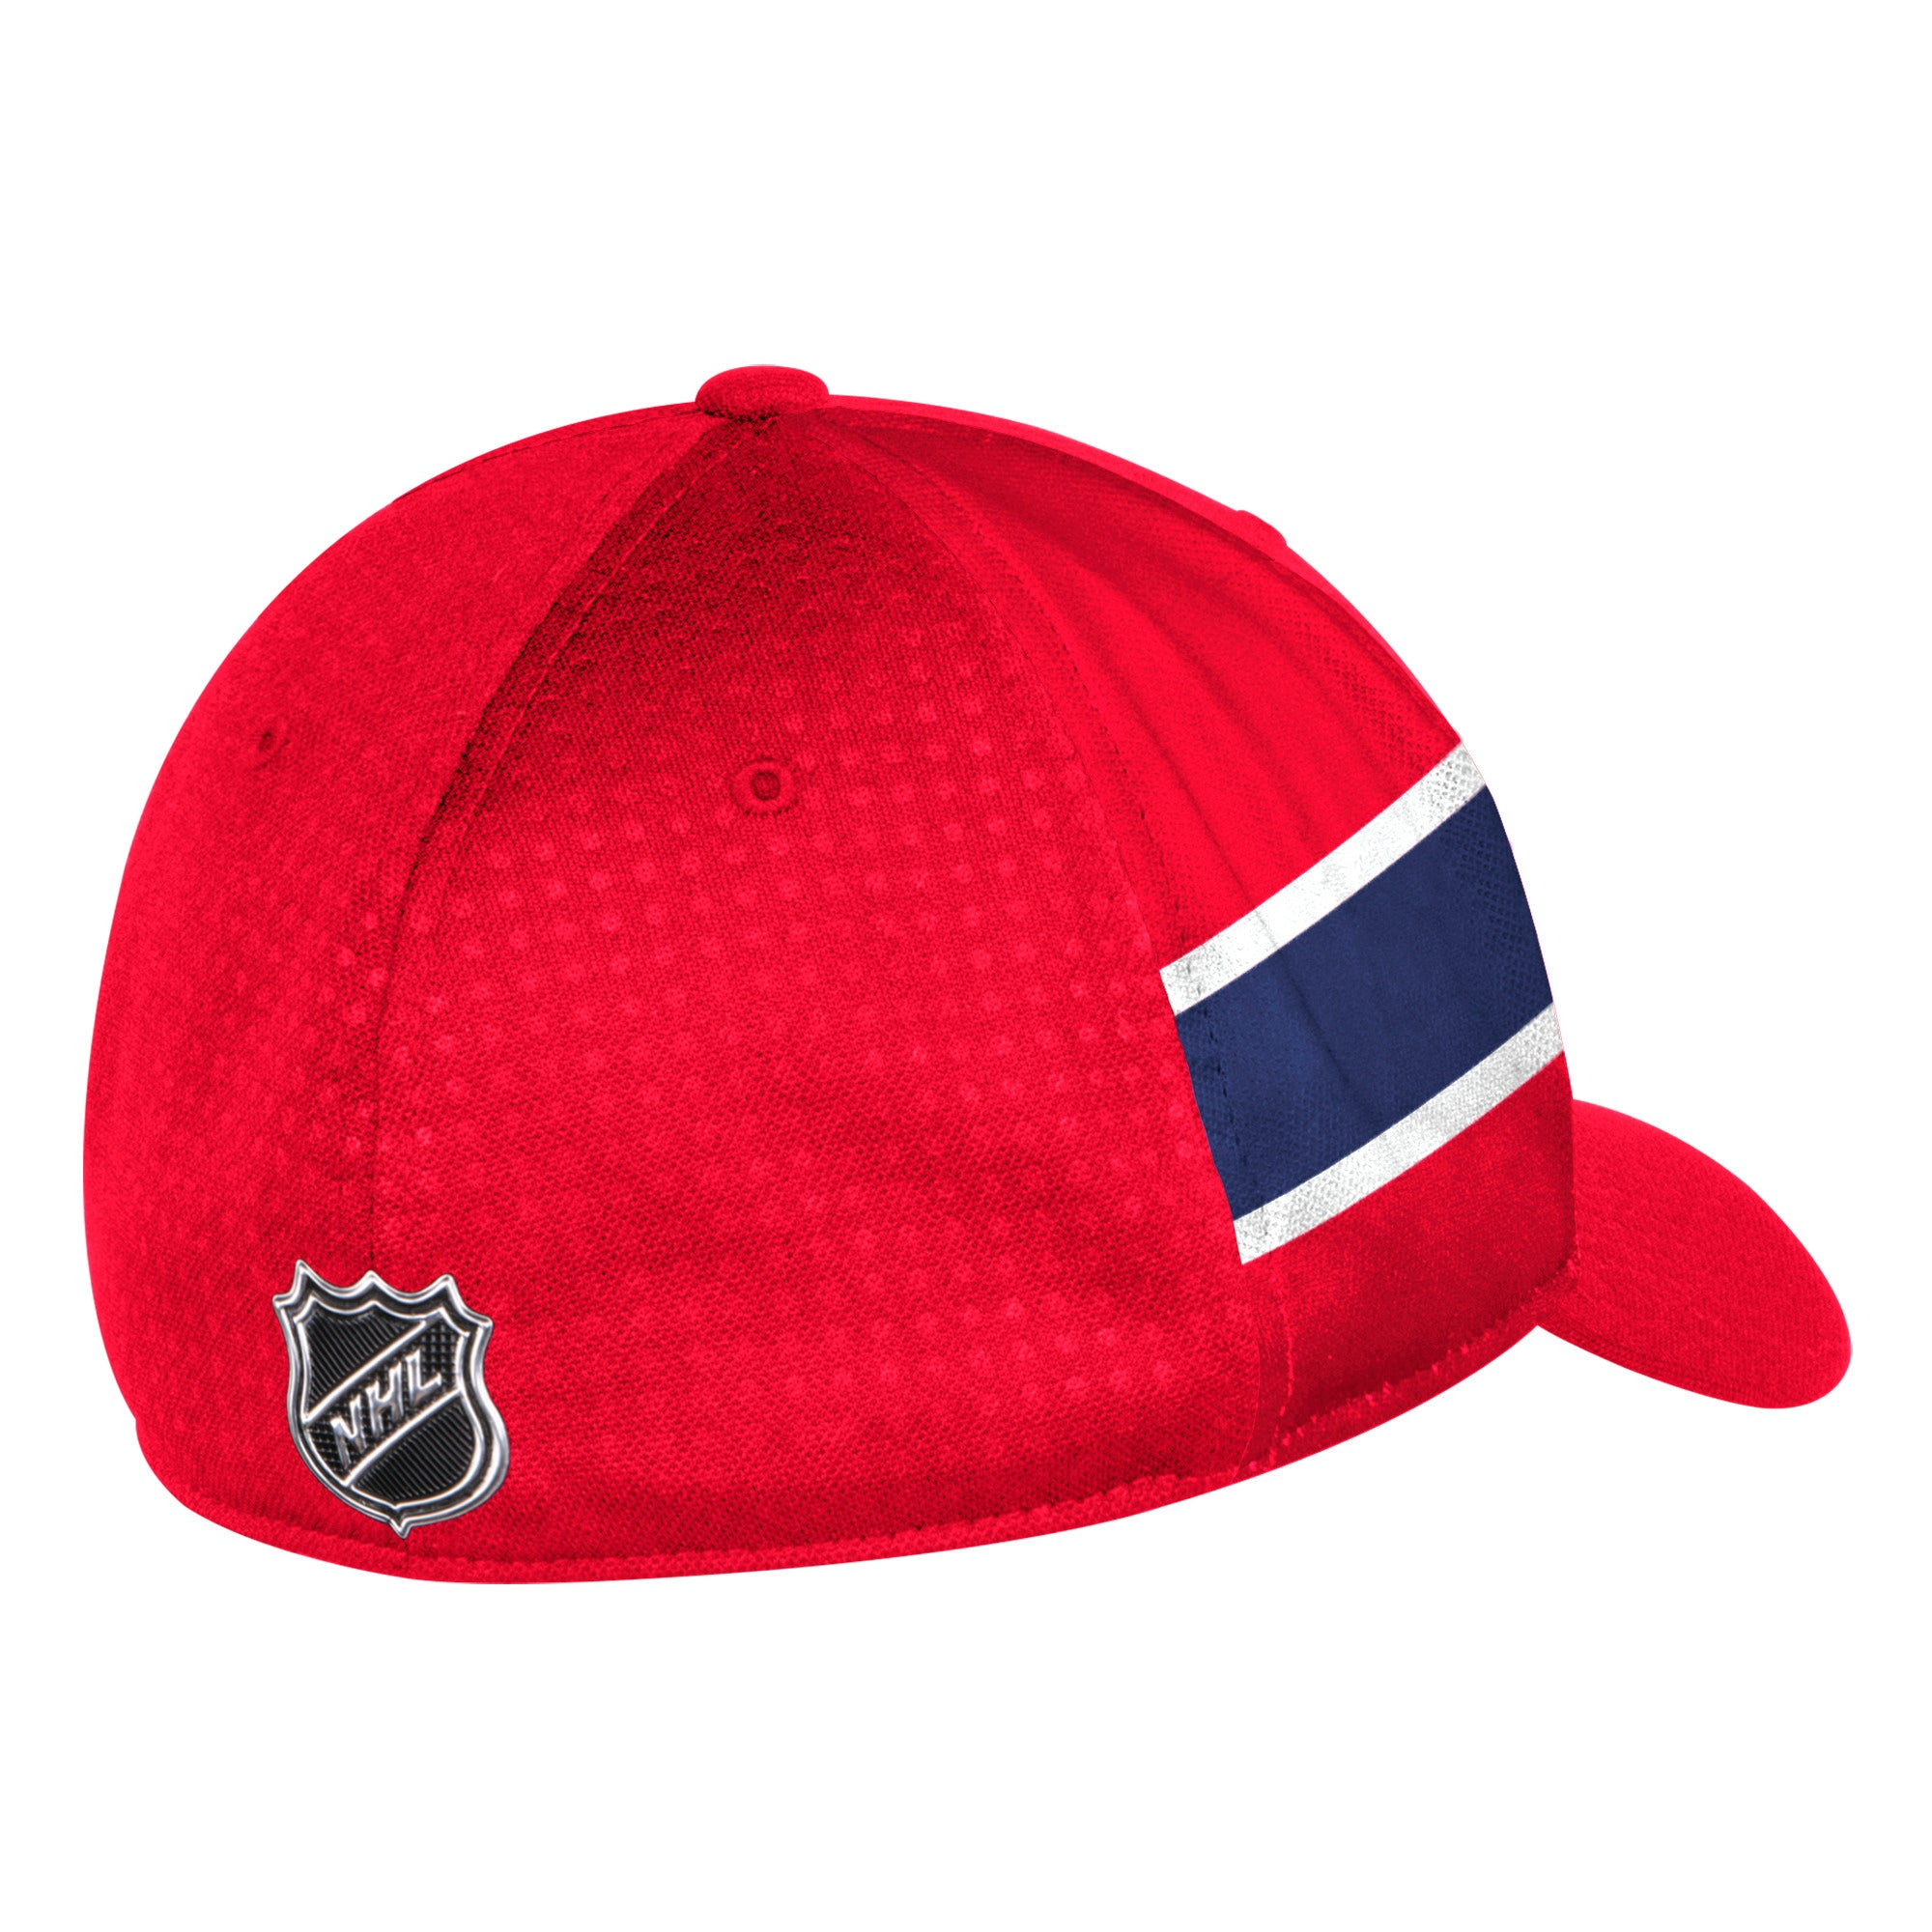 new style 57035 71845 ... low price montreal canadiens draft day hat 7314c 0df5b